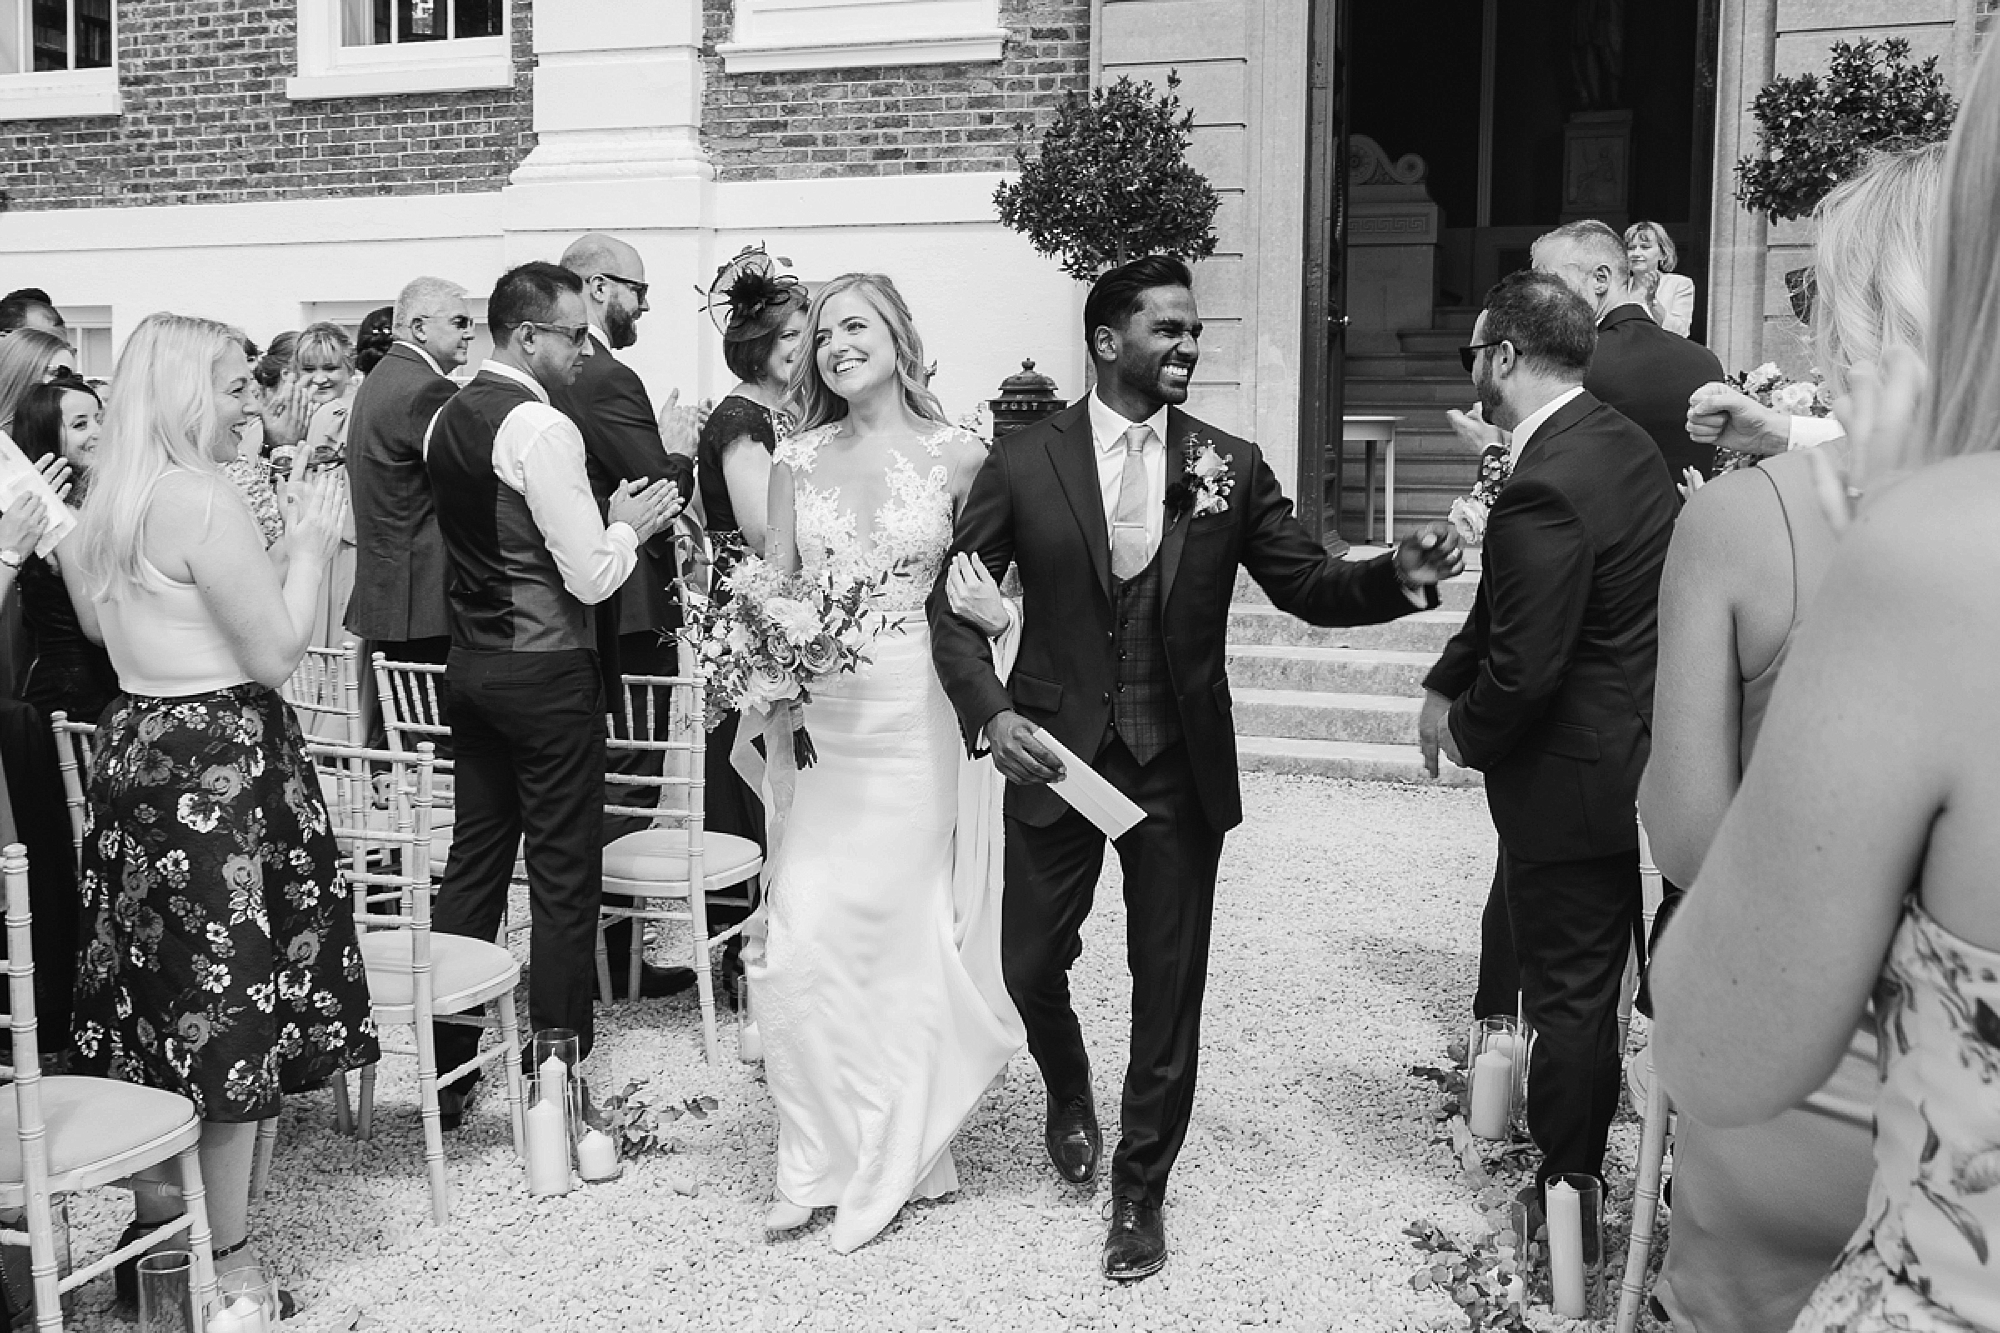 Bride and groom walk down the aisle at devon wedding in black and white